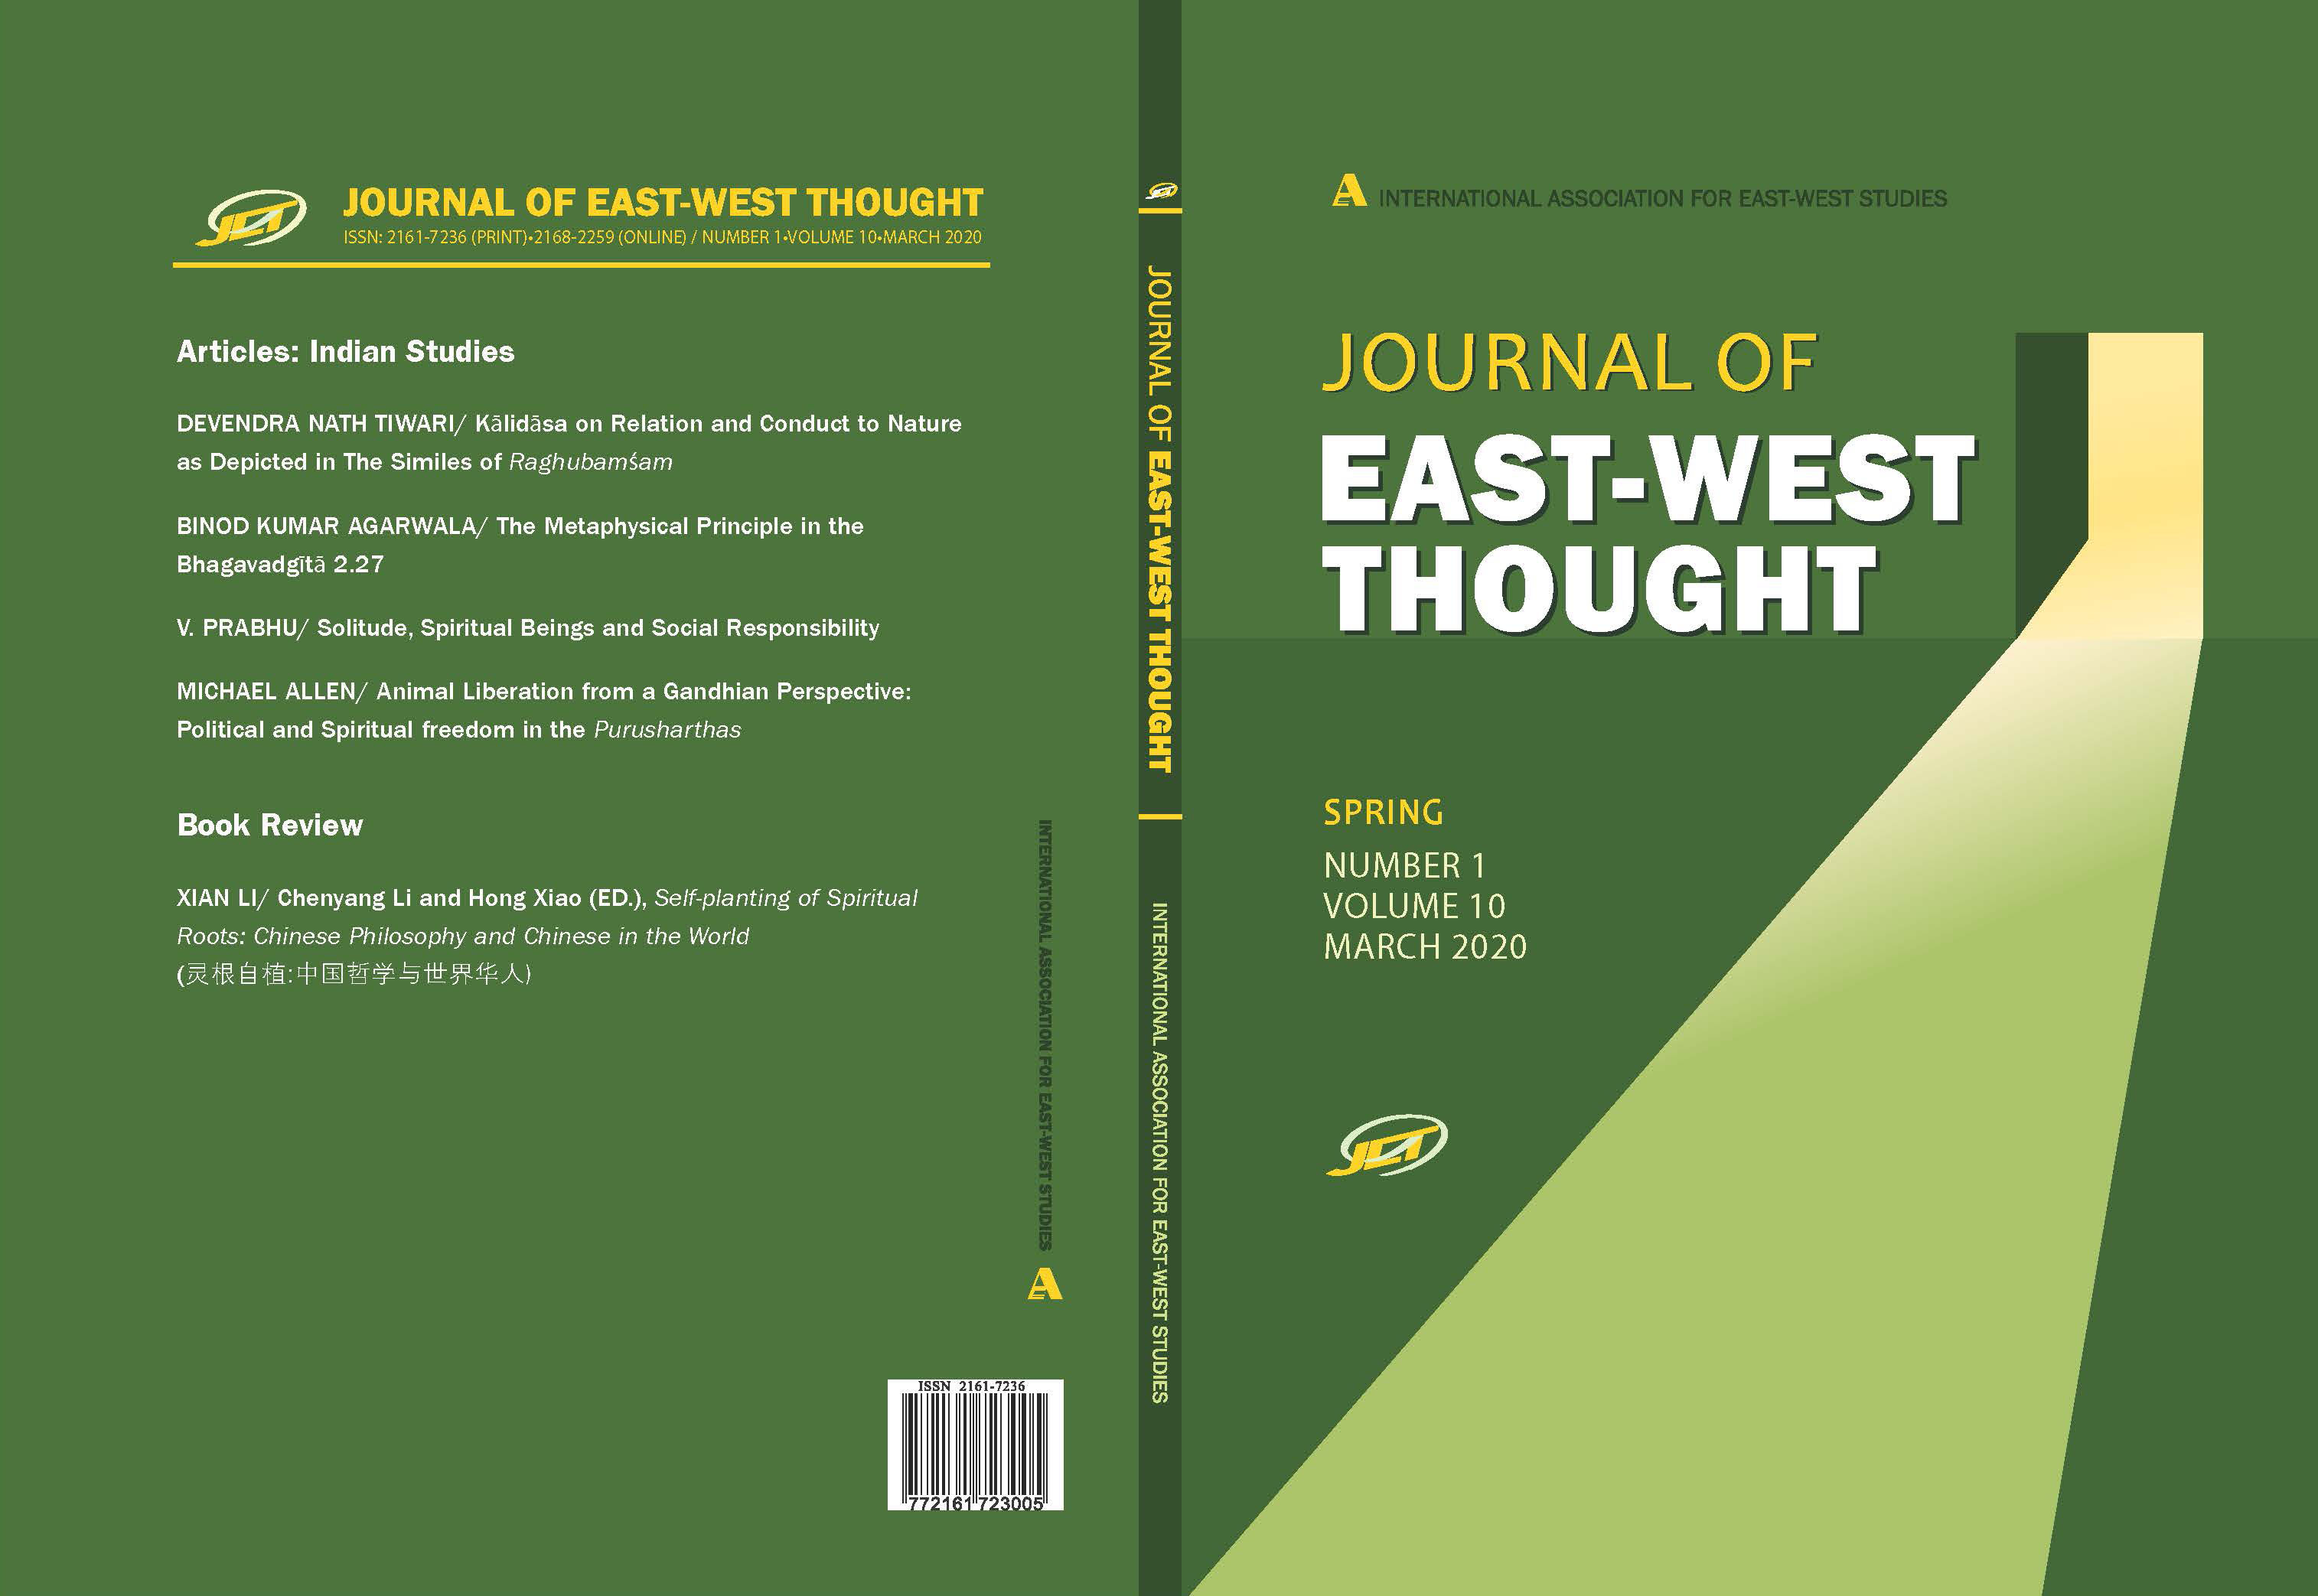 Front and Back cover of Journal of East-West Thought Volume 10 issue 1, Spring 2020